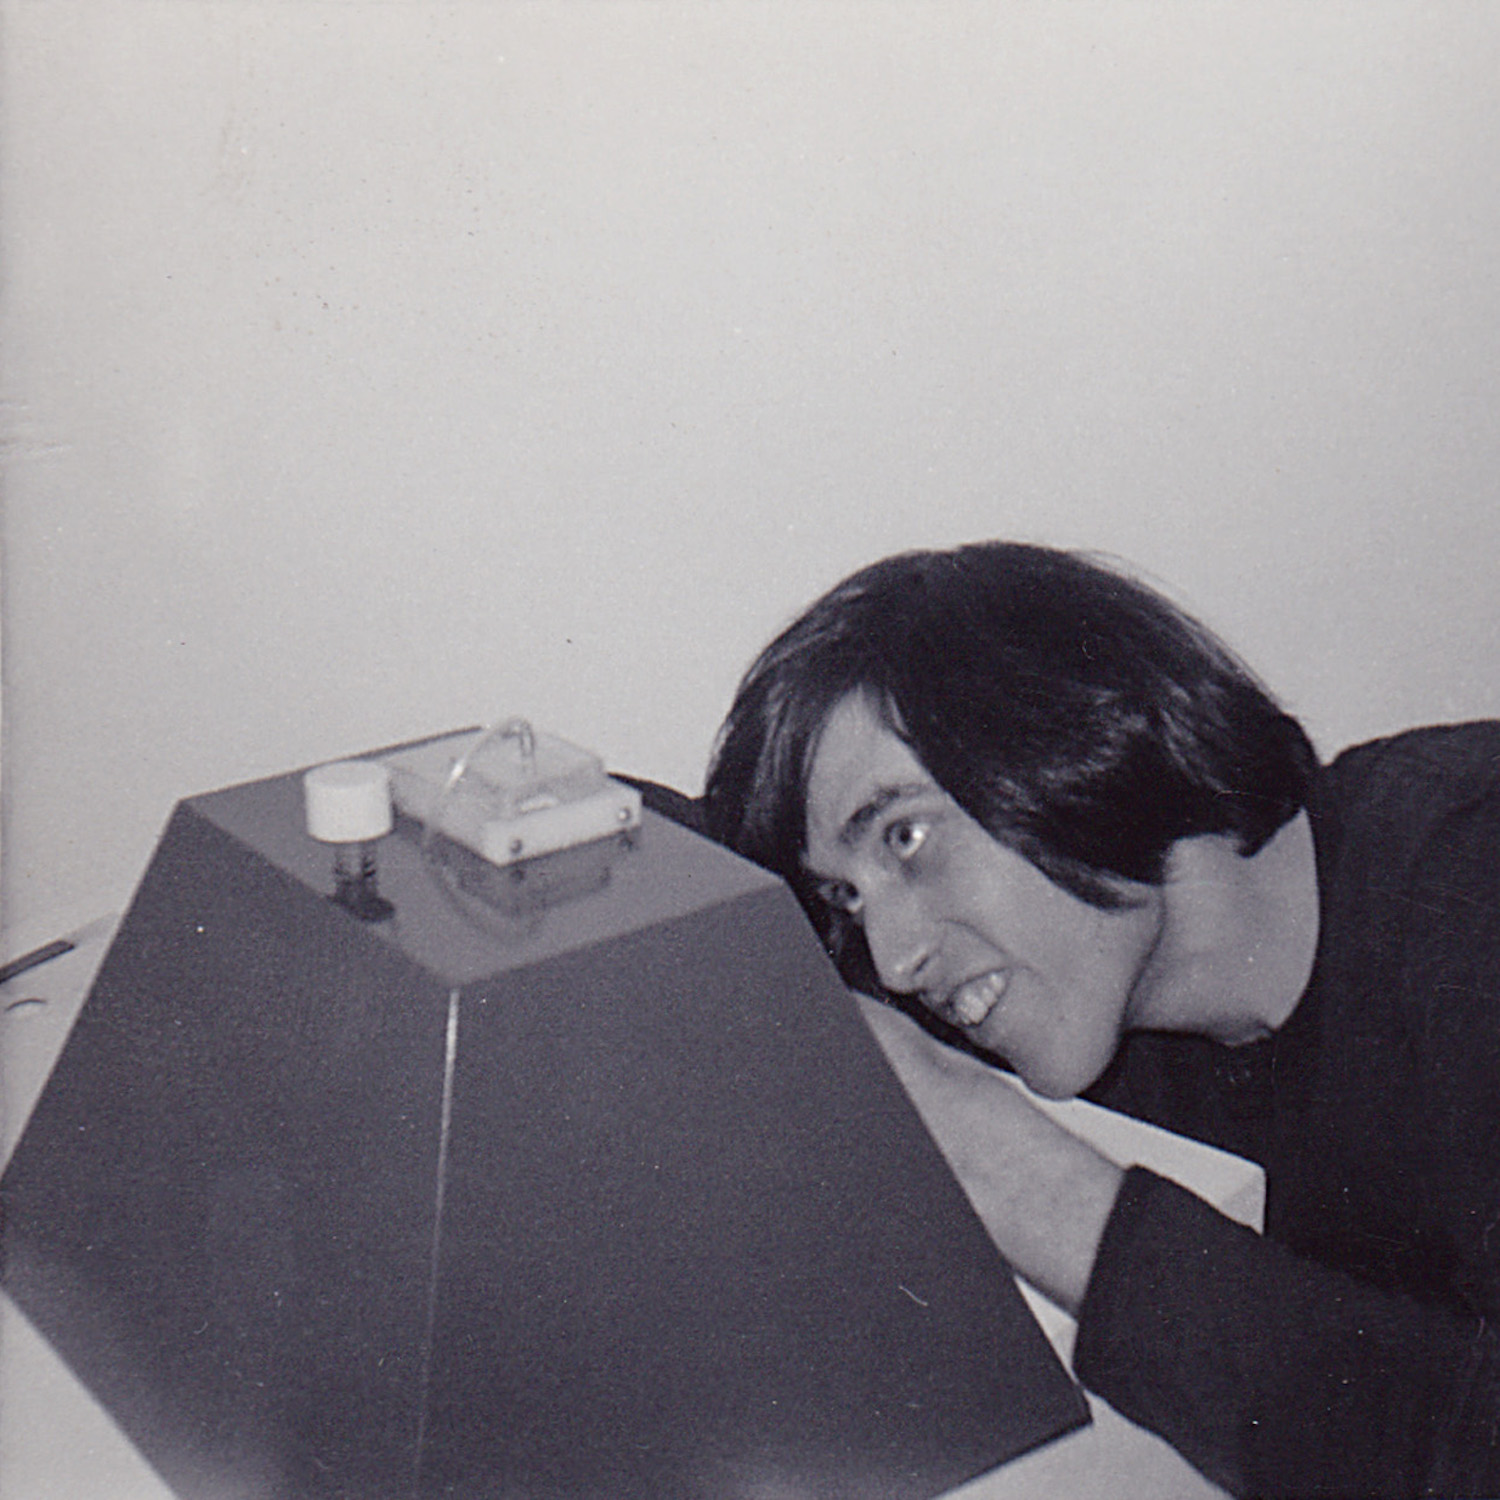 Artist Mike Malloy fixing his Ant Killing Machine at OK Harris Gallery, c. 1972